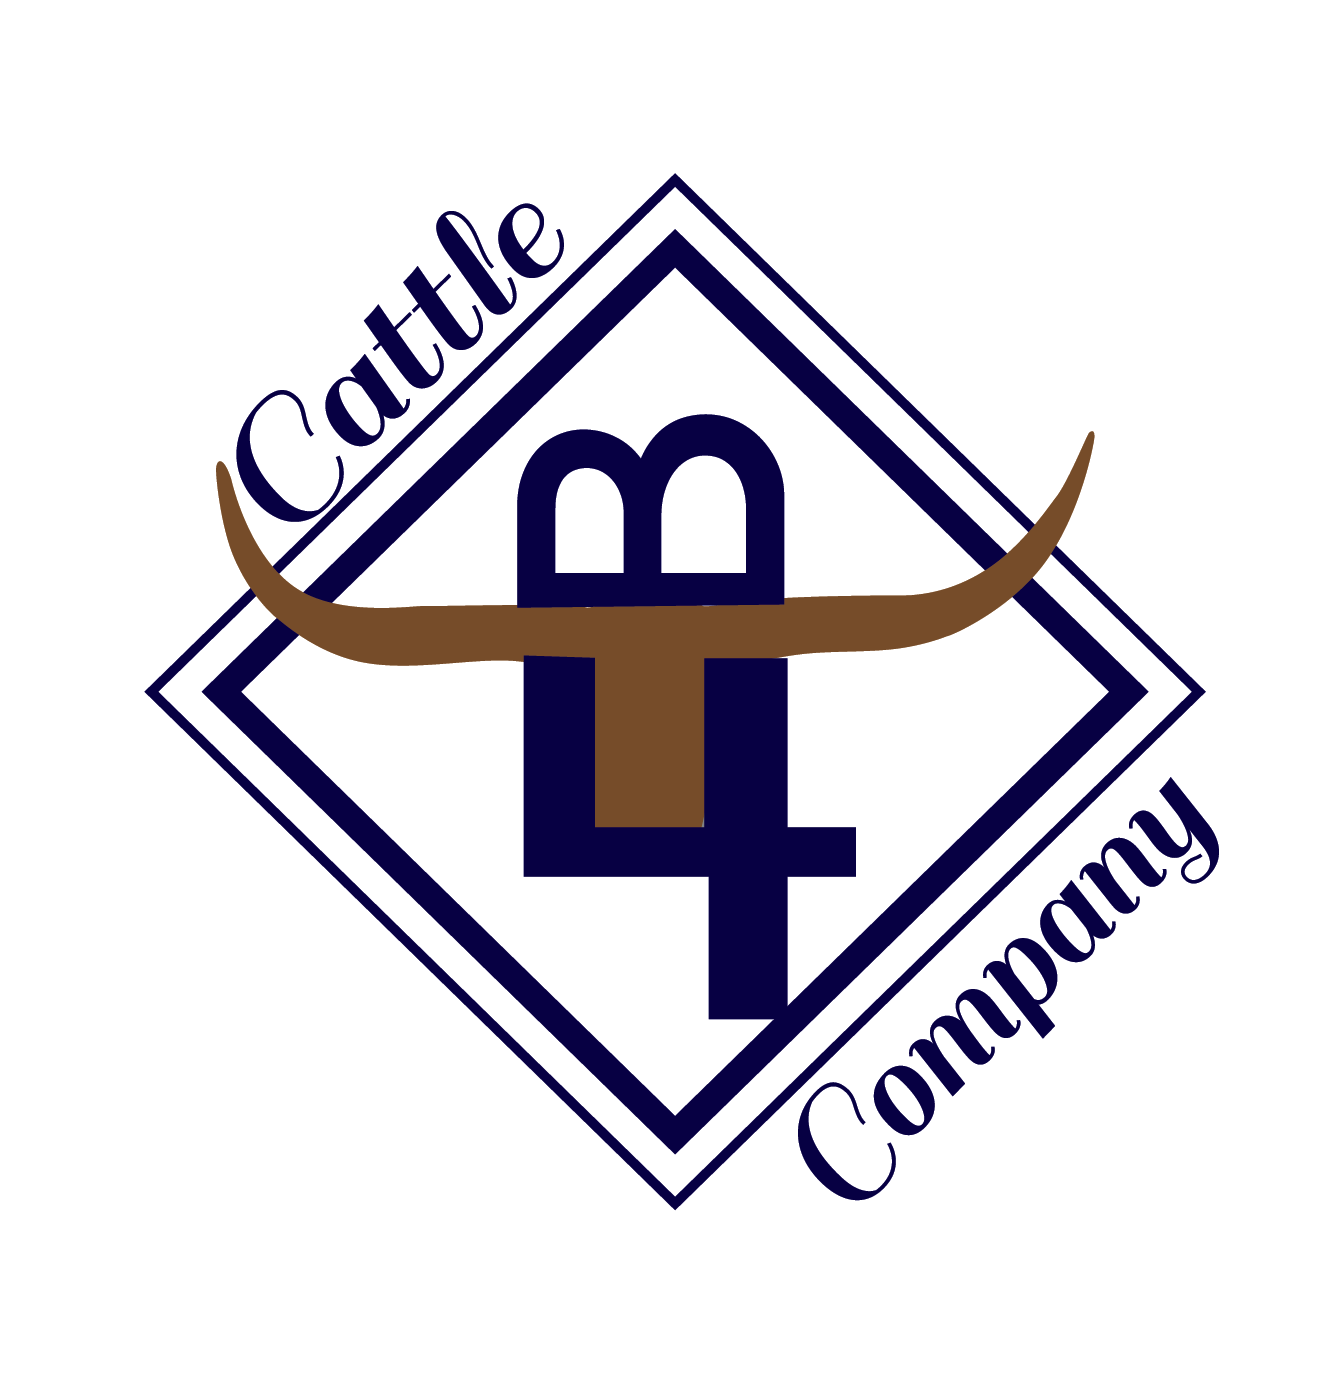 B4 Cattle Compnay Longhorns Logo